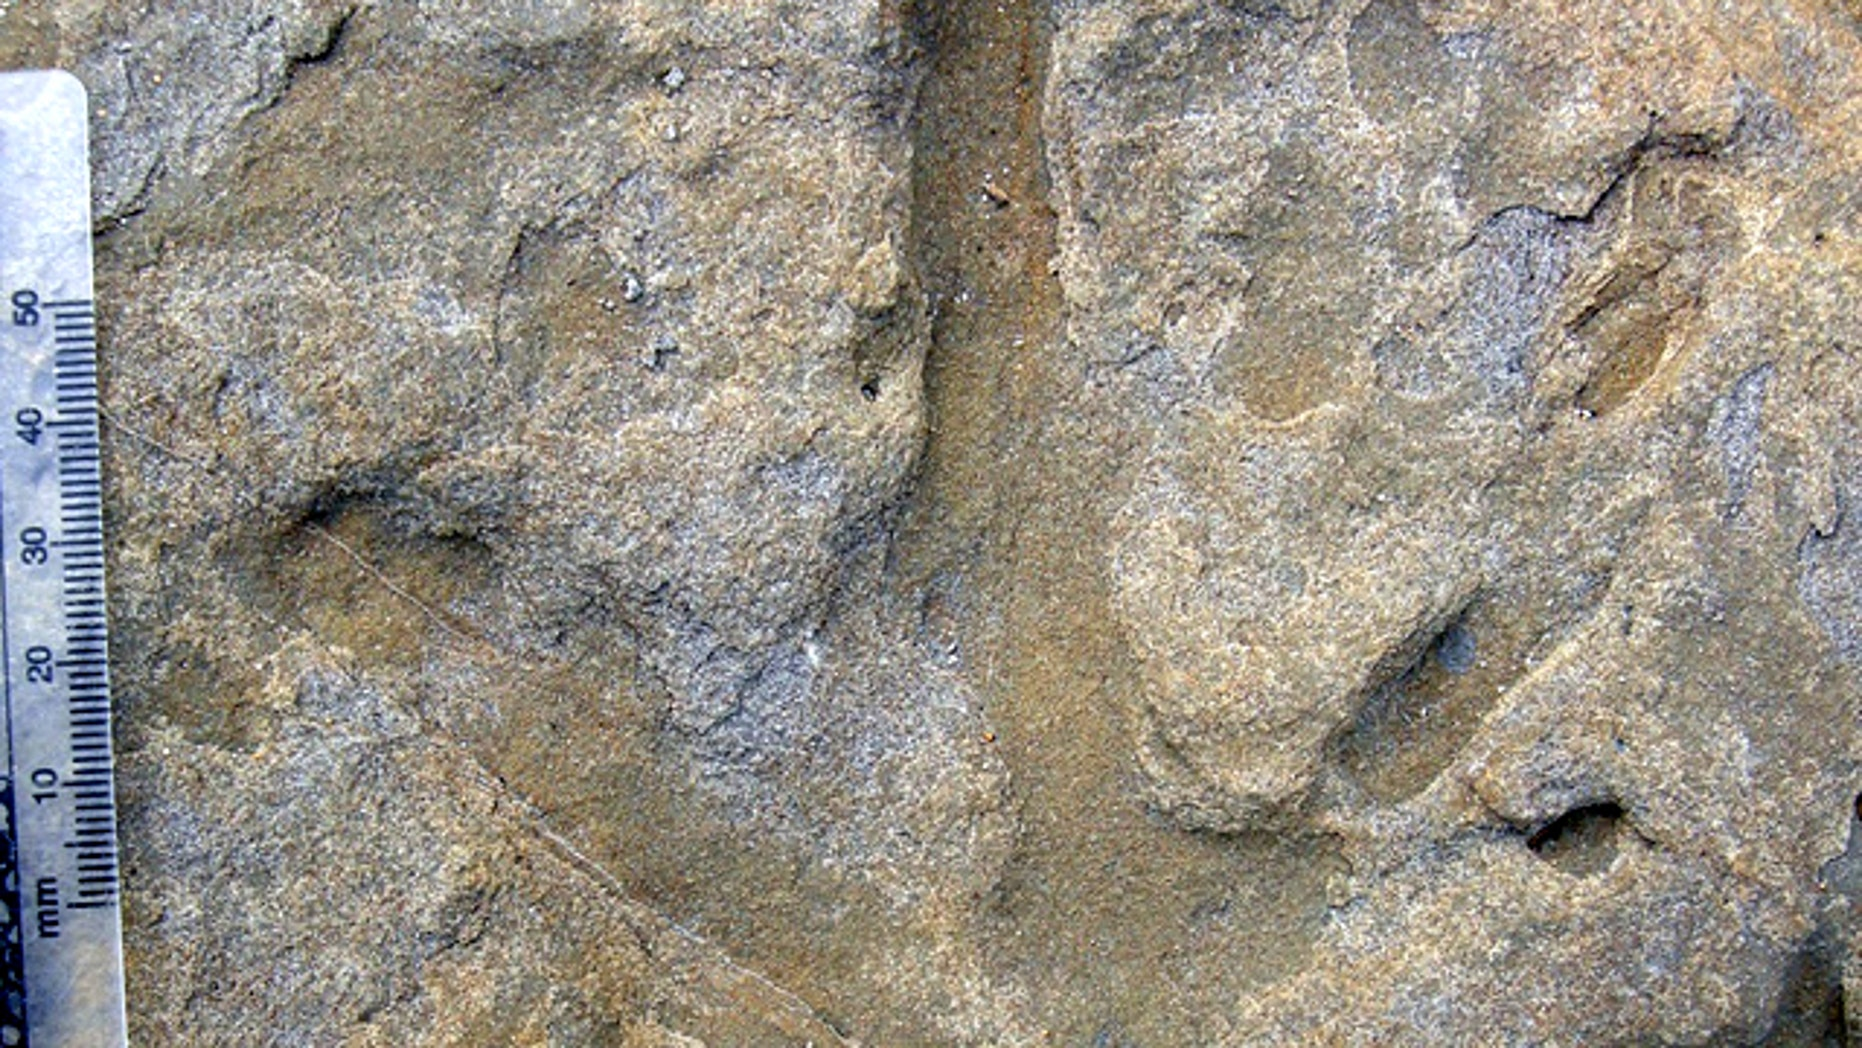 A close up view of one theropod footprint the recent spate of markings found on a beach in Australia, a part of the continent that used to be a part of the South Pole.